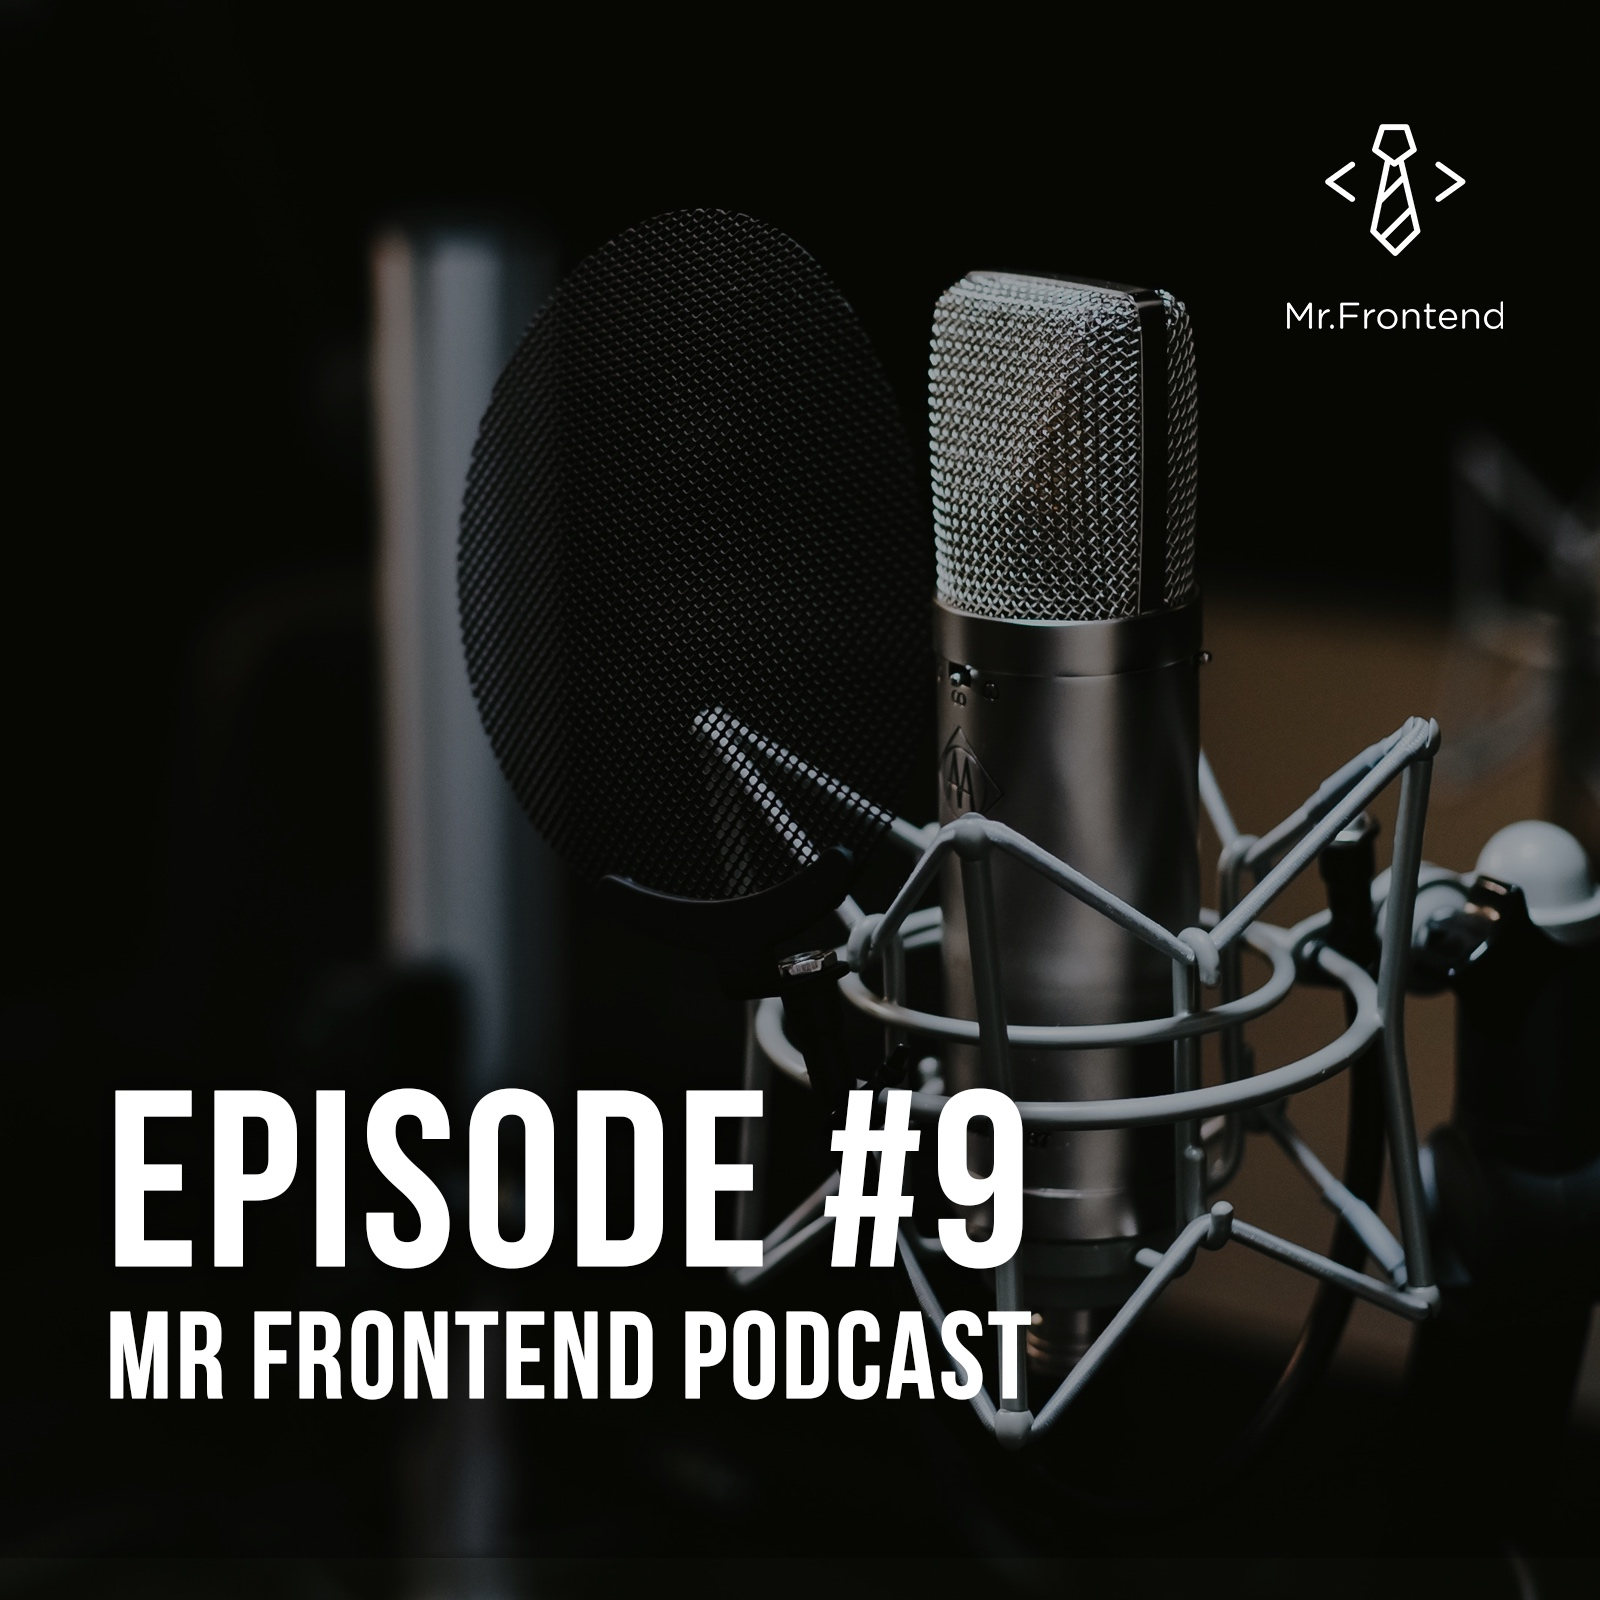 Mr Frontend Podcast #9: How to spice up your technical skills during the end of 2017 hollidays!